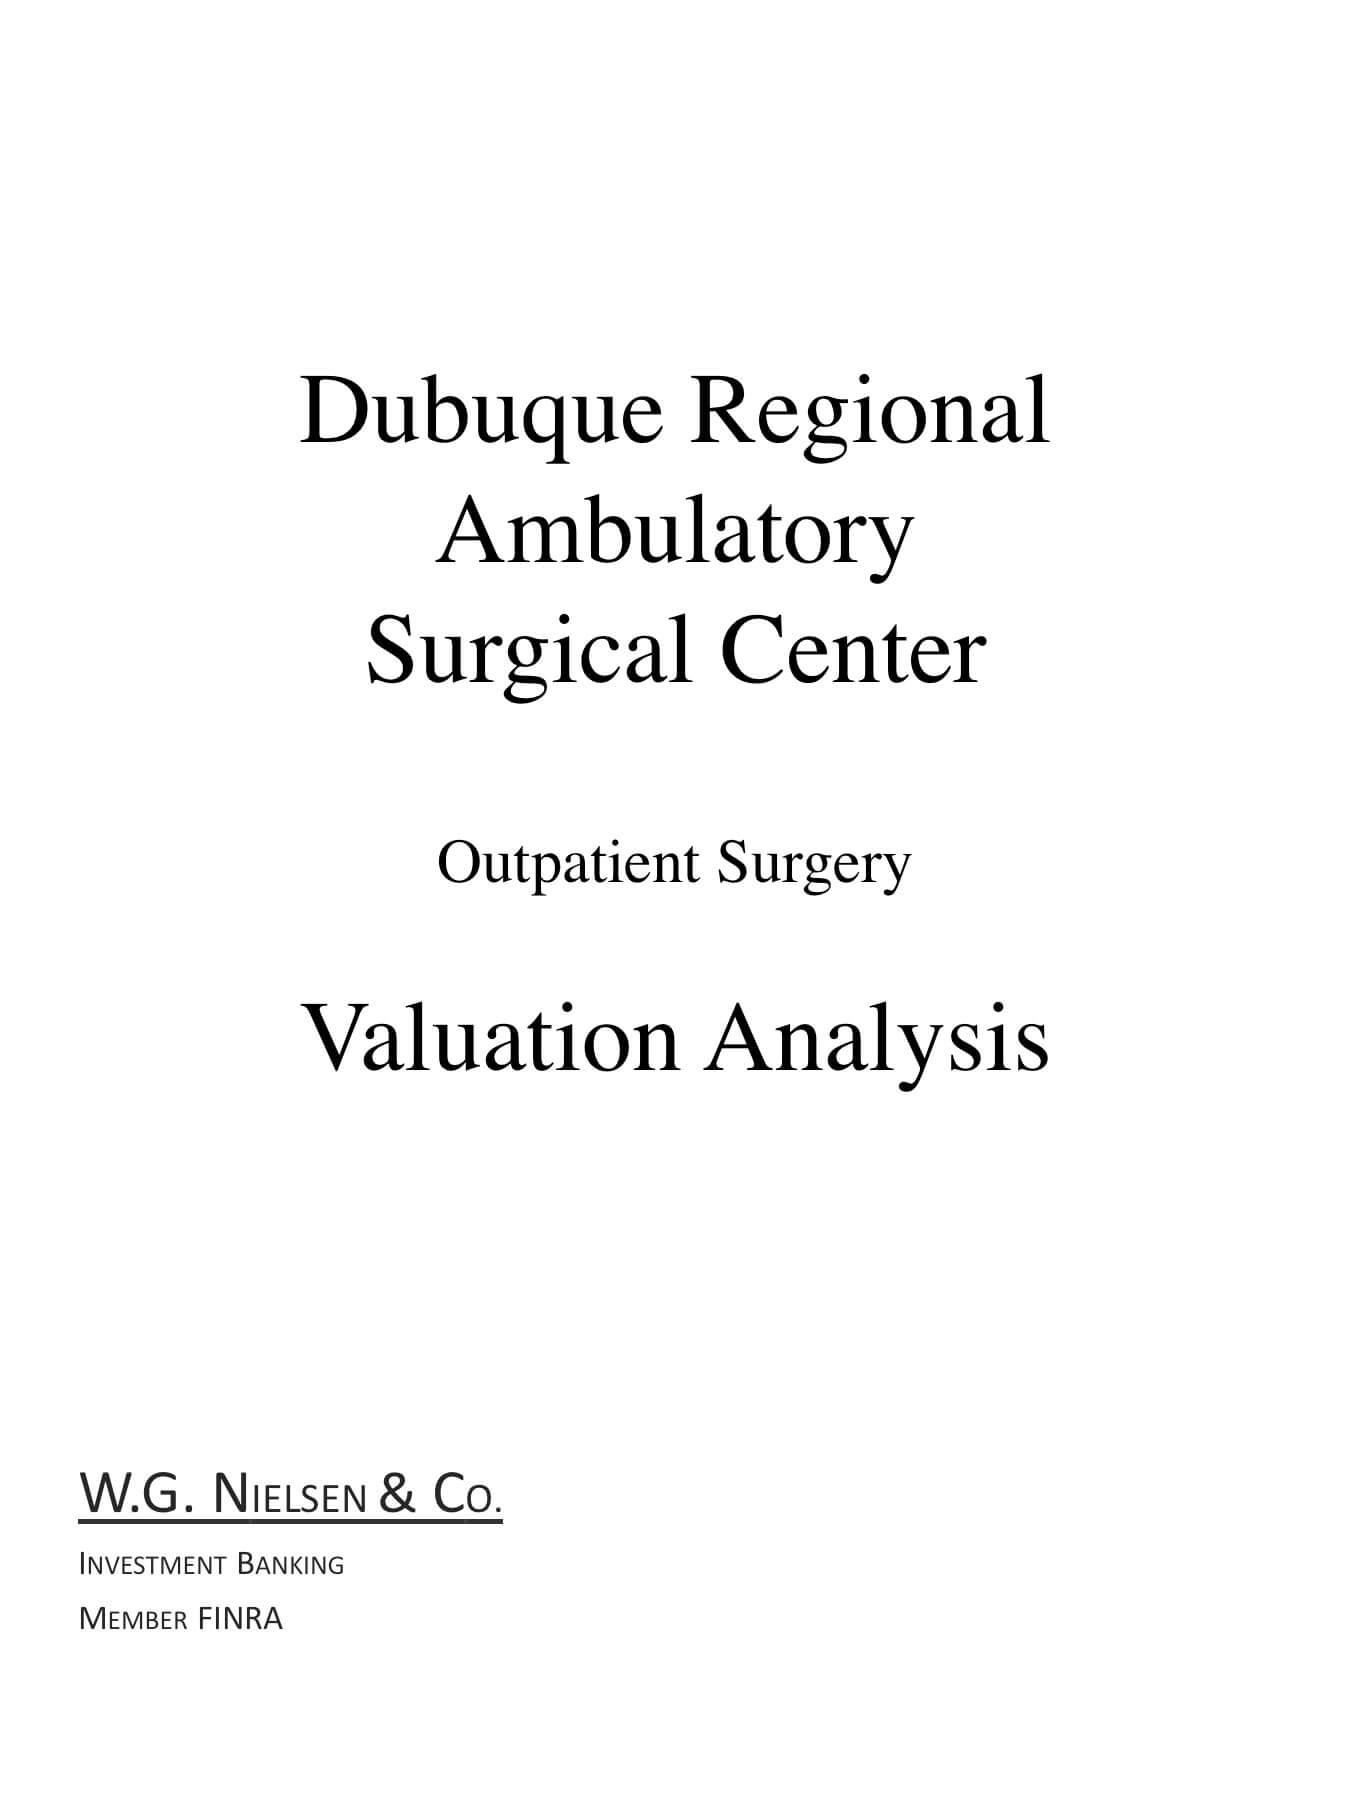 dubuque regional ambulatory surgical center investment banking transaction